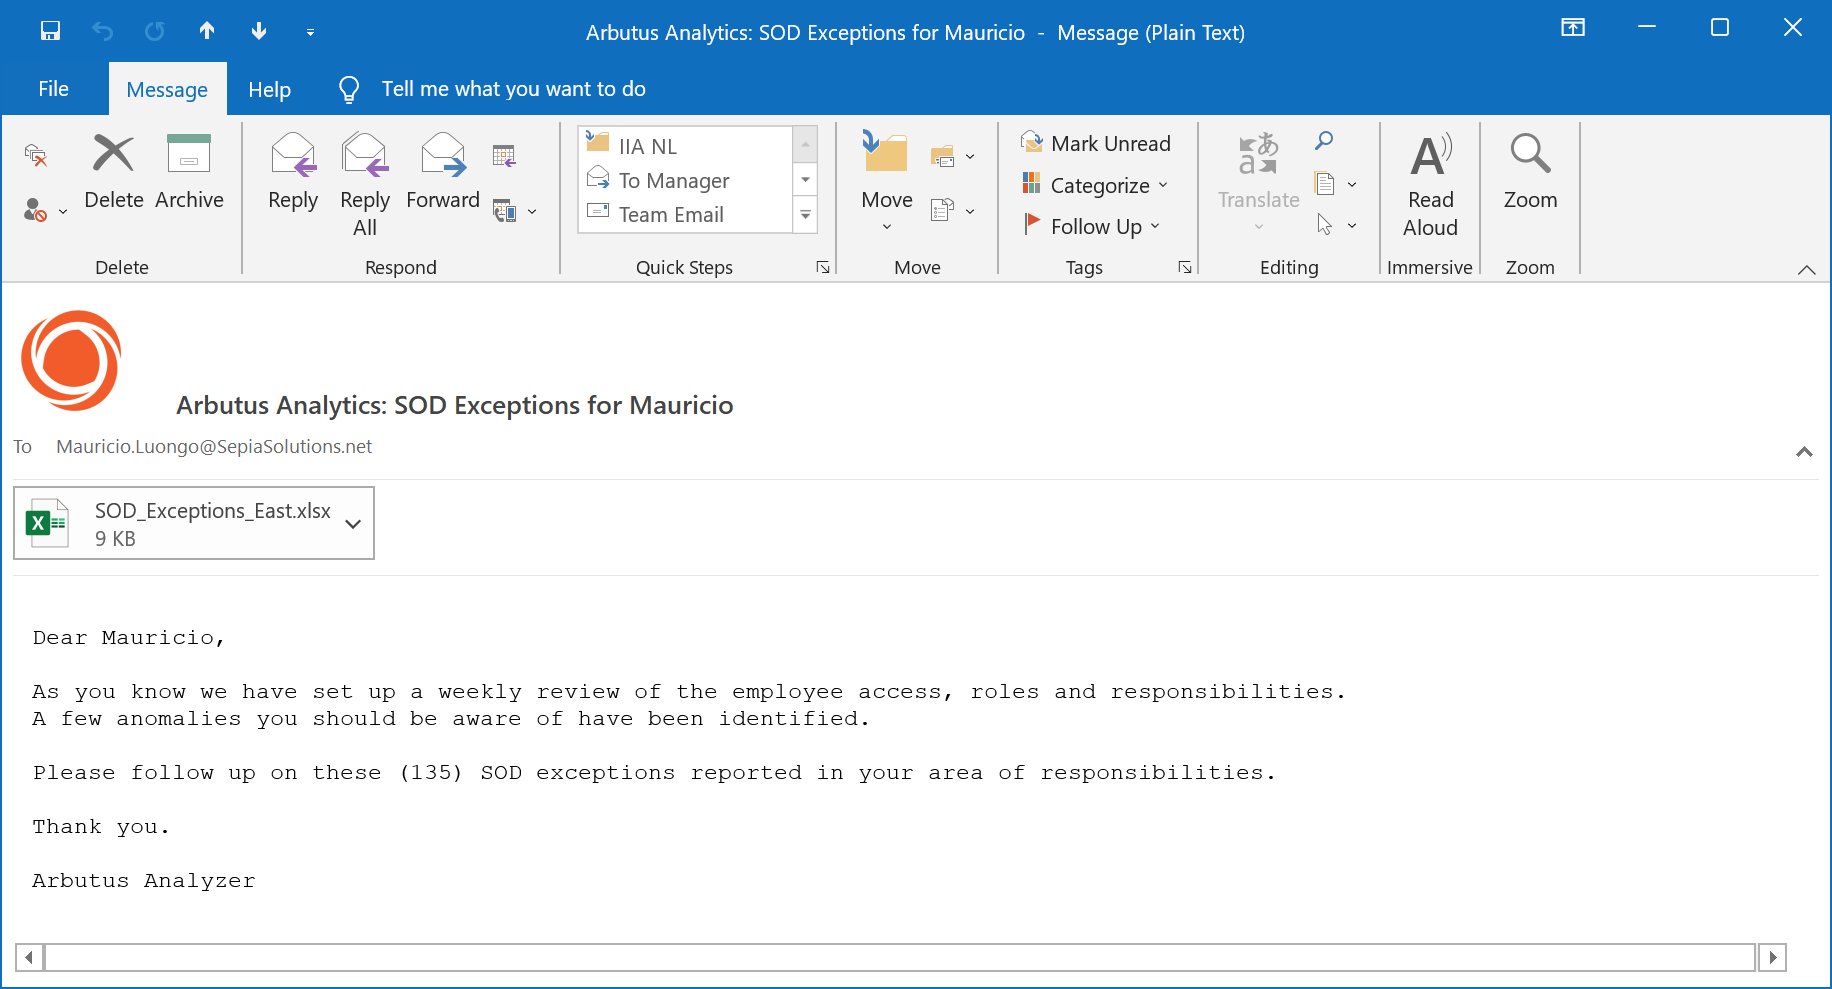 """Email as received by regional manager. Email reads: """"Dear Mauricio, As you know we have set up a weekly review of the employee access, roles and responsibilities. A few anomalies you should be aware of have been identified. Please follow up on these (135) SOD exceptions reported in your area of responsibilities. Thank you. Arbutus Analyzer"""". The email contains an attachment with name """"SOD_Exceptions_East.xlsx""""."""